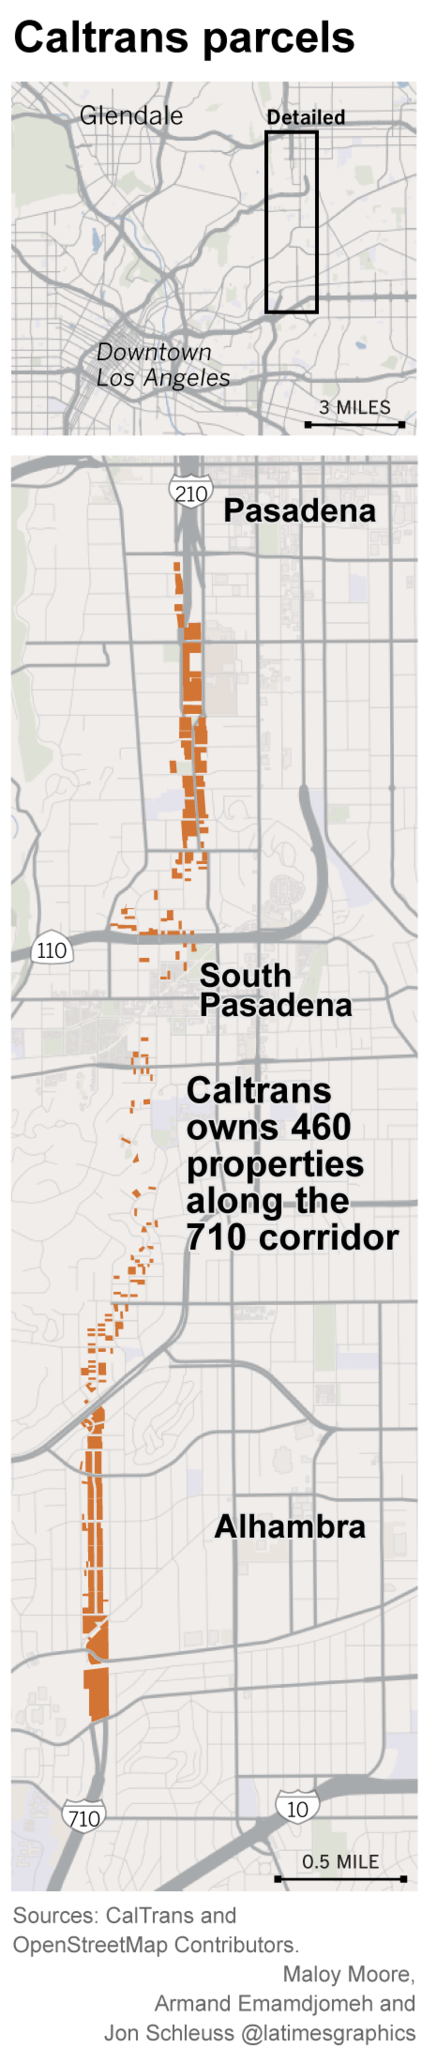 Map of properties and parcels owned by Caltrans near the 710 freeway.